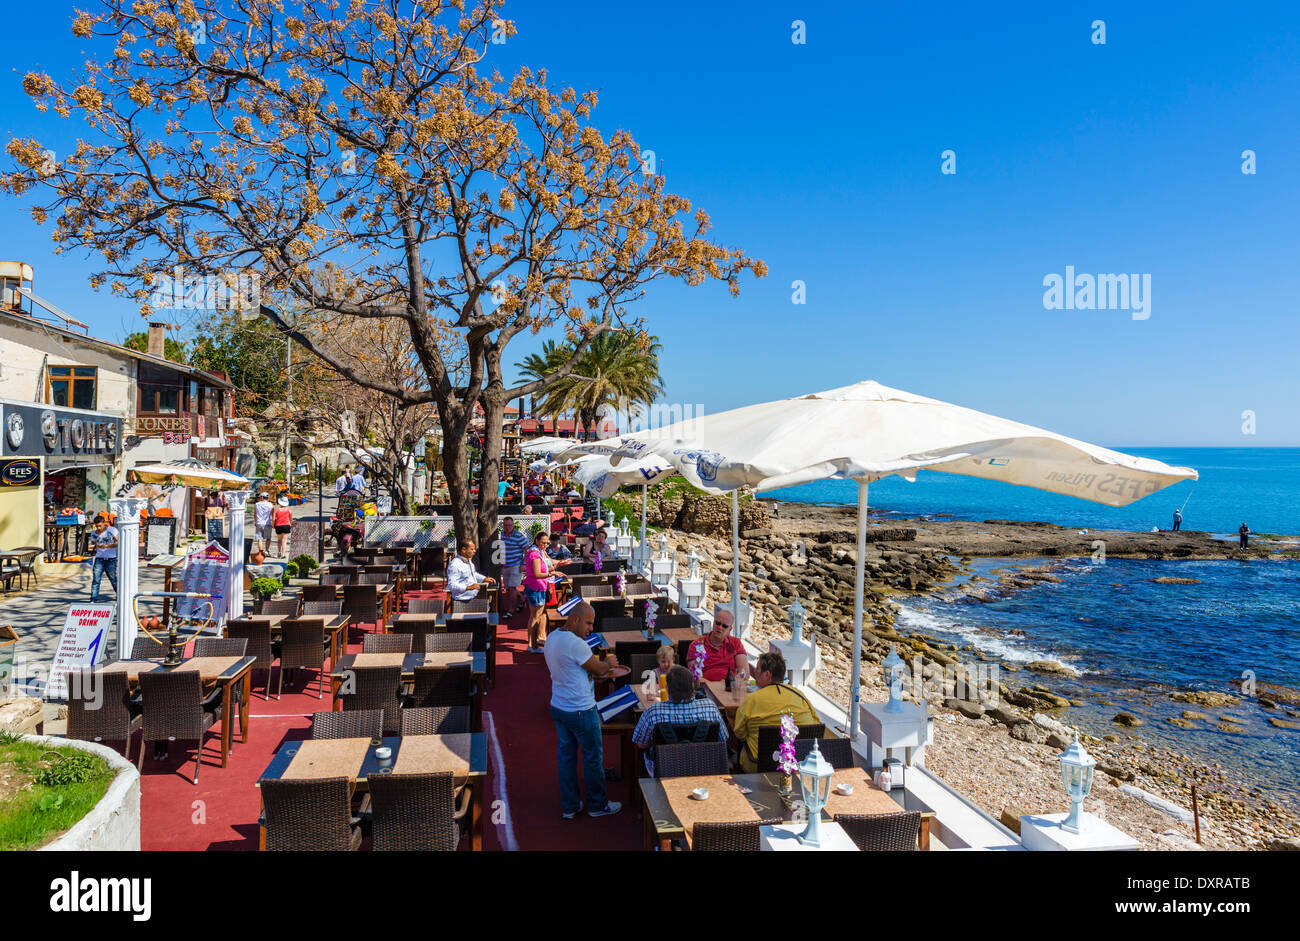 Waterfront restaurant in the old town, Side, Antalya Province, Turkey - Stock Image